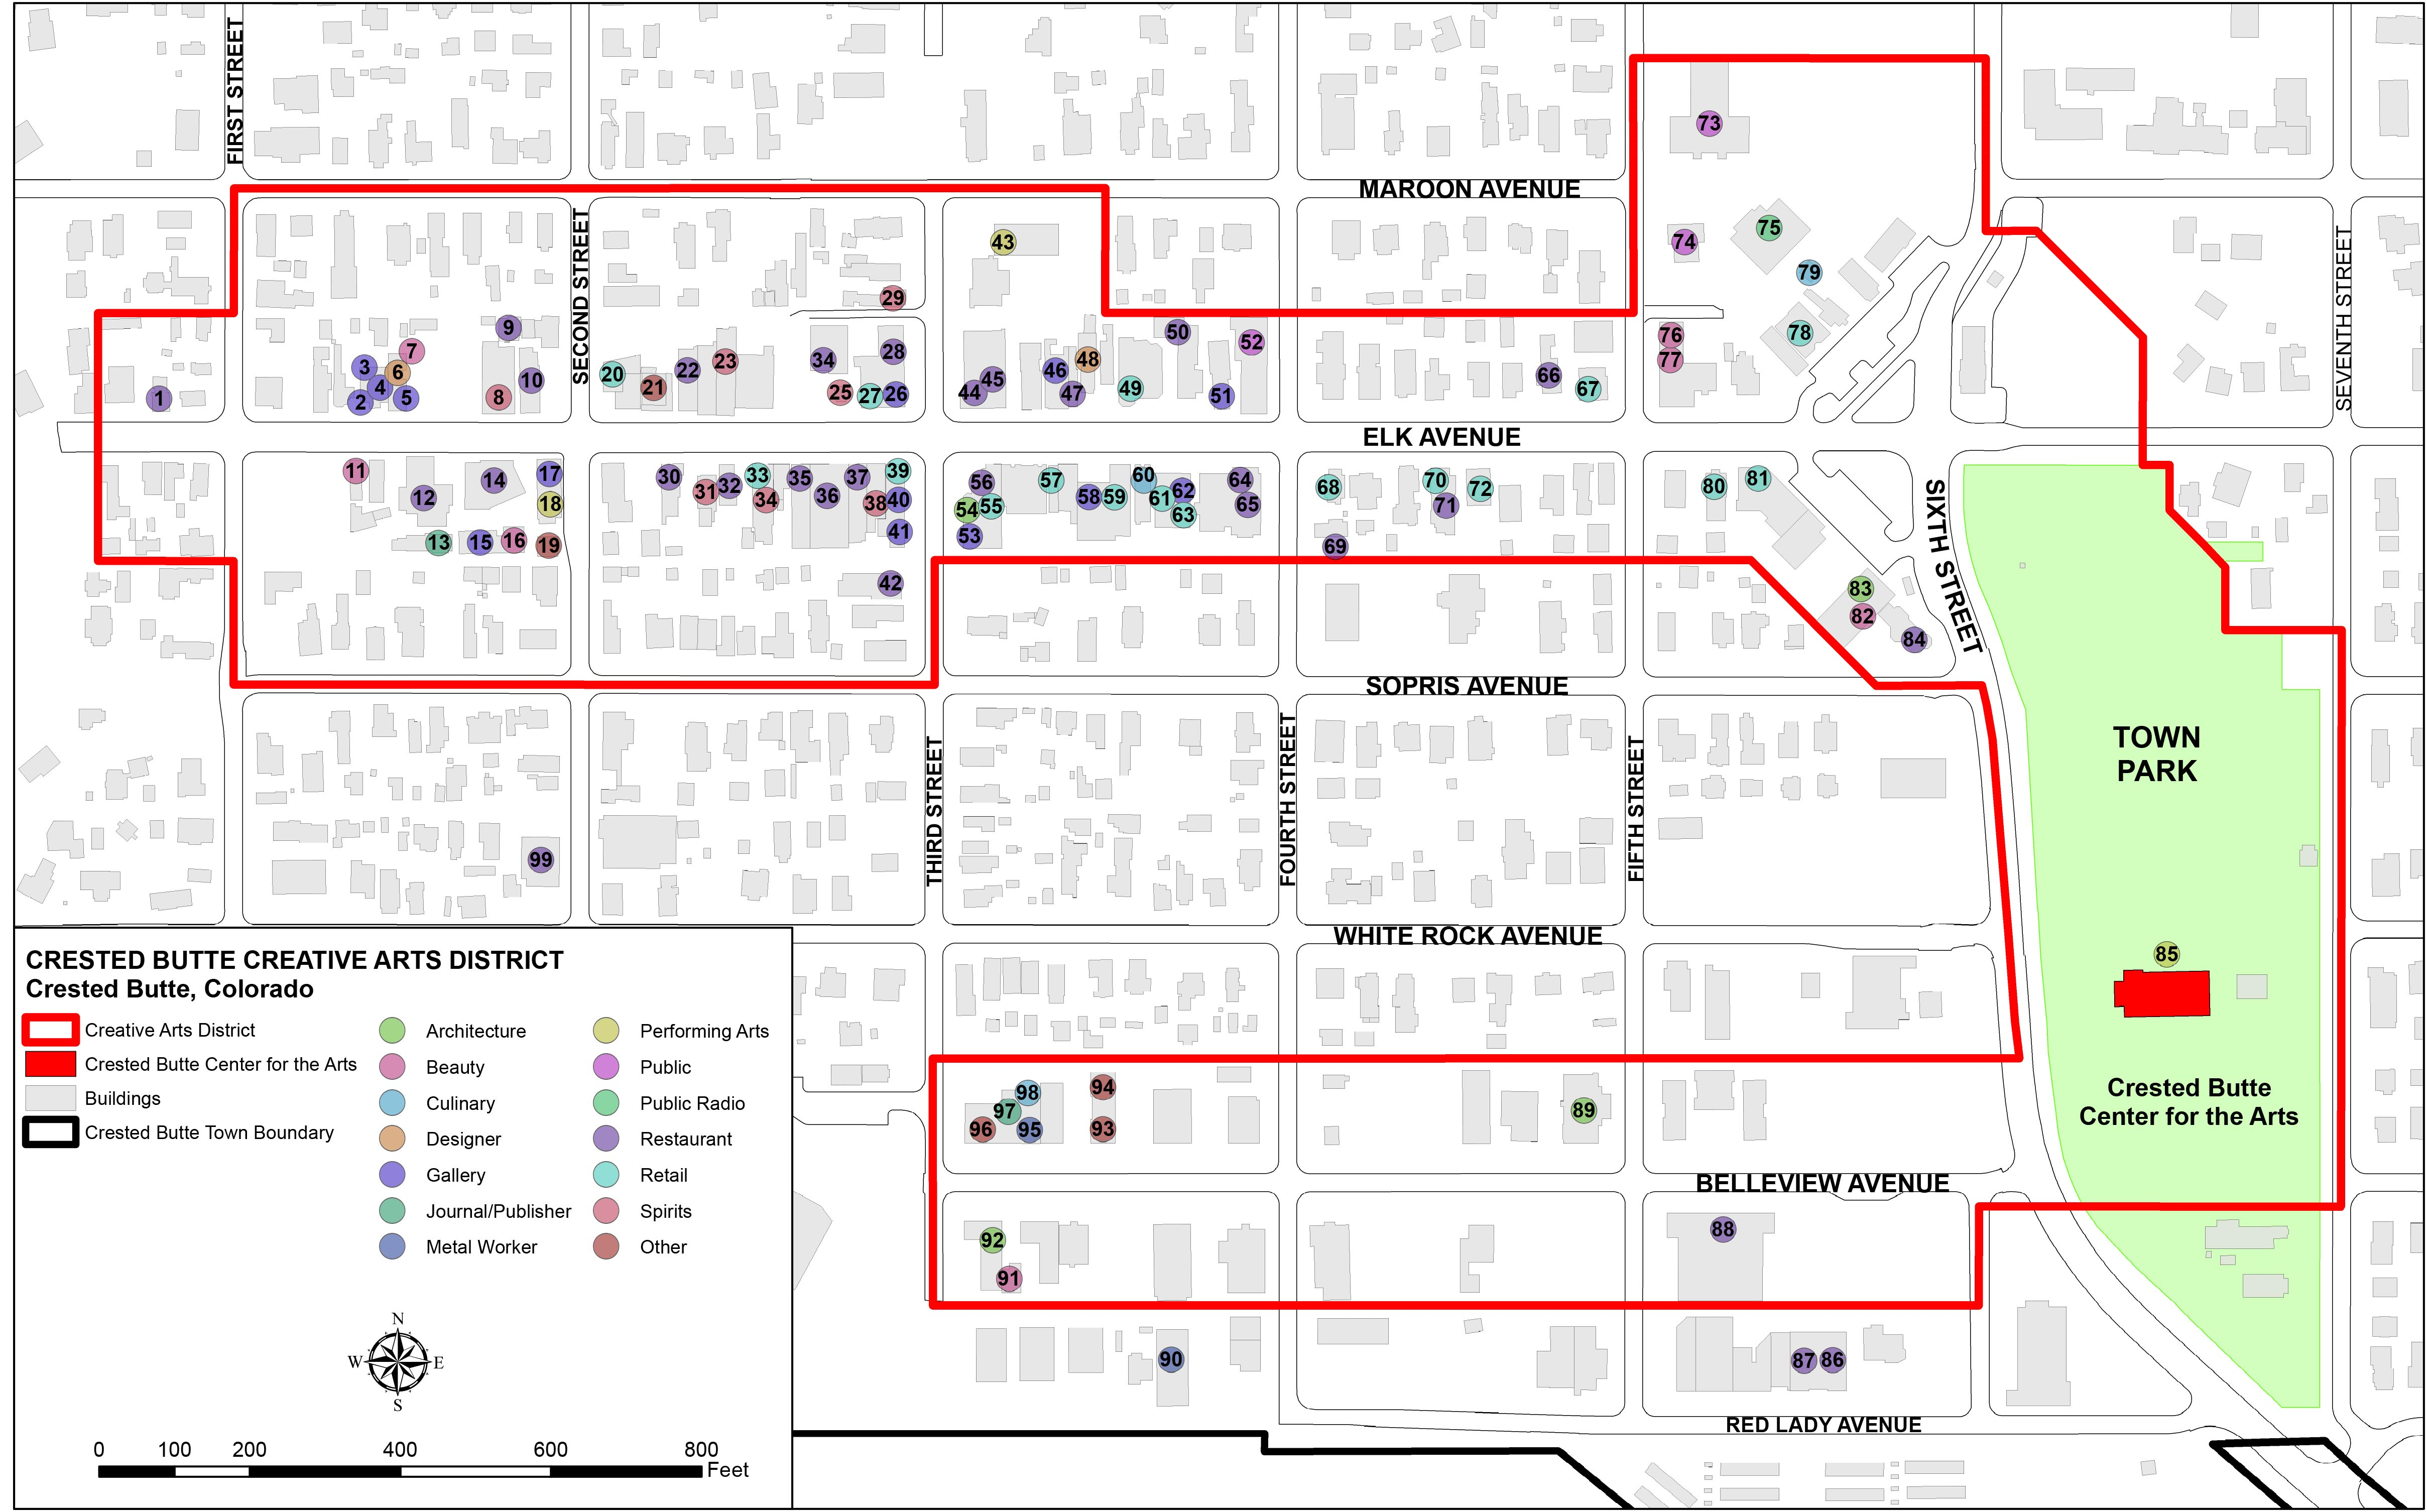 Photo: Map Of Crested Butte Certified Creative District